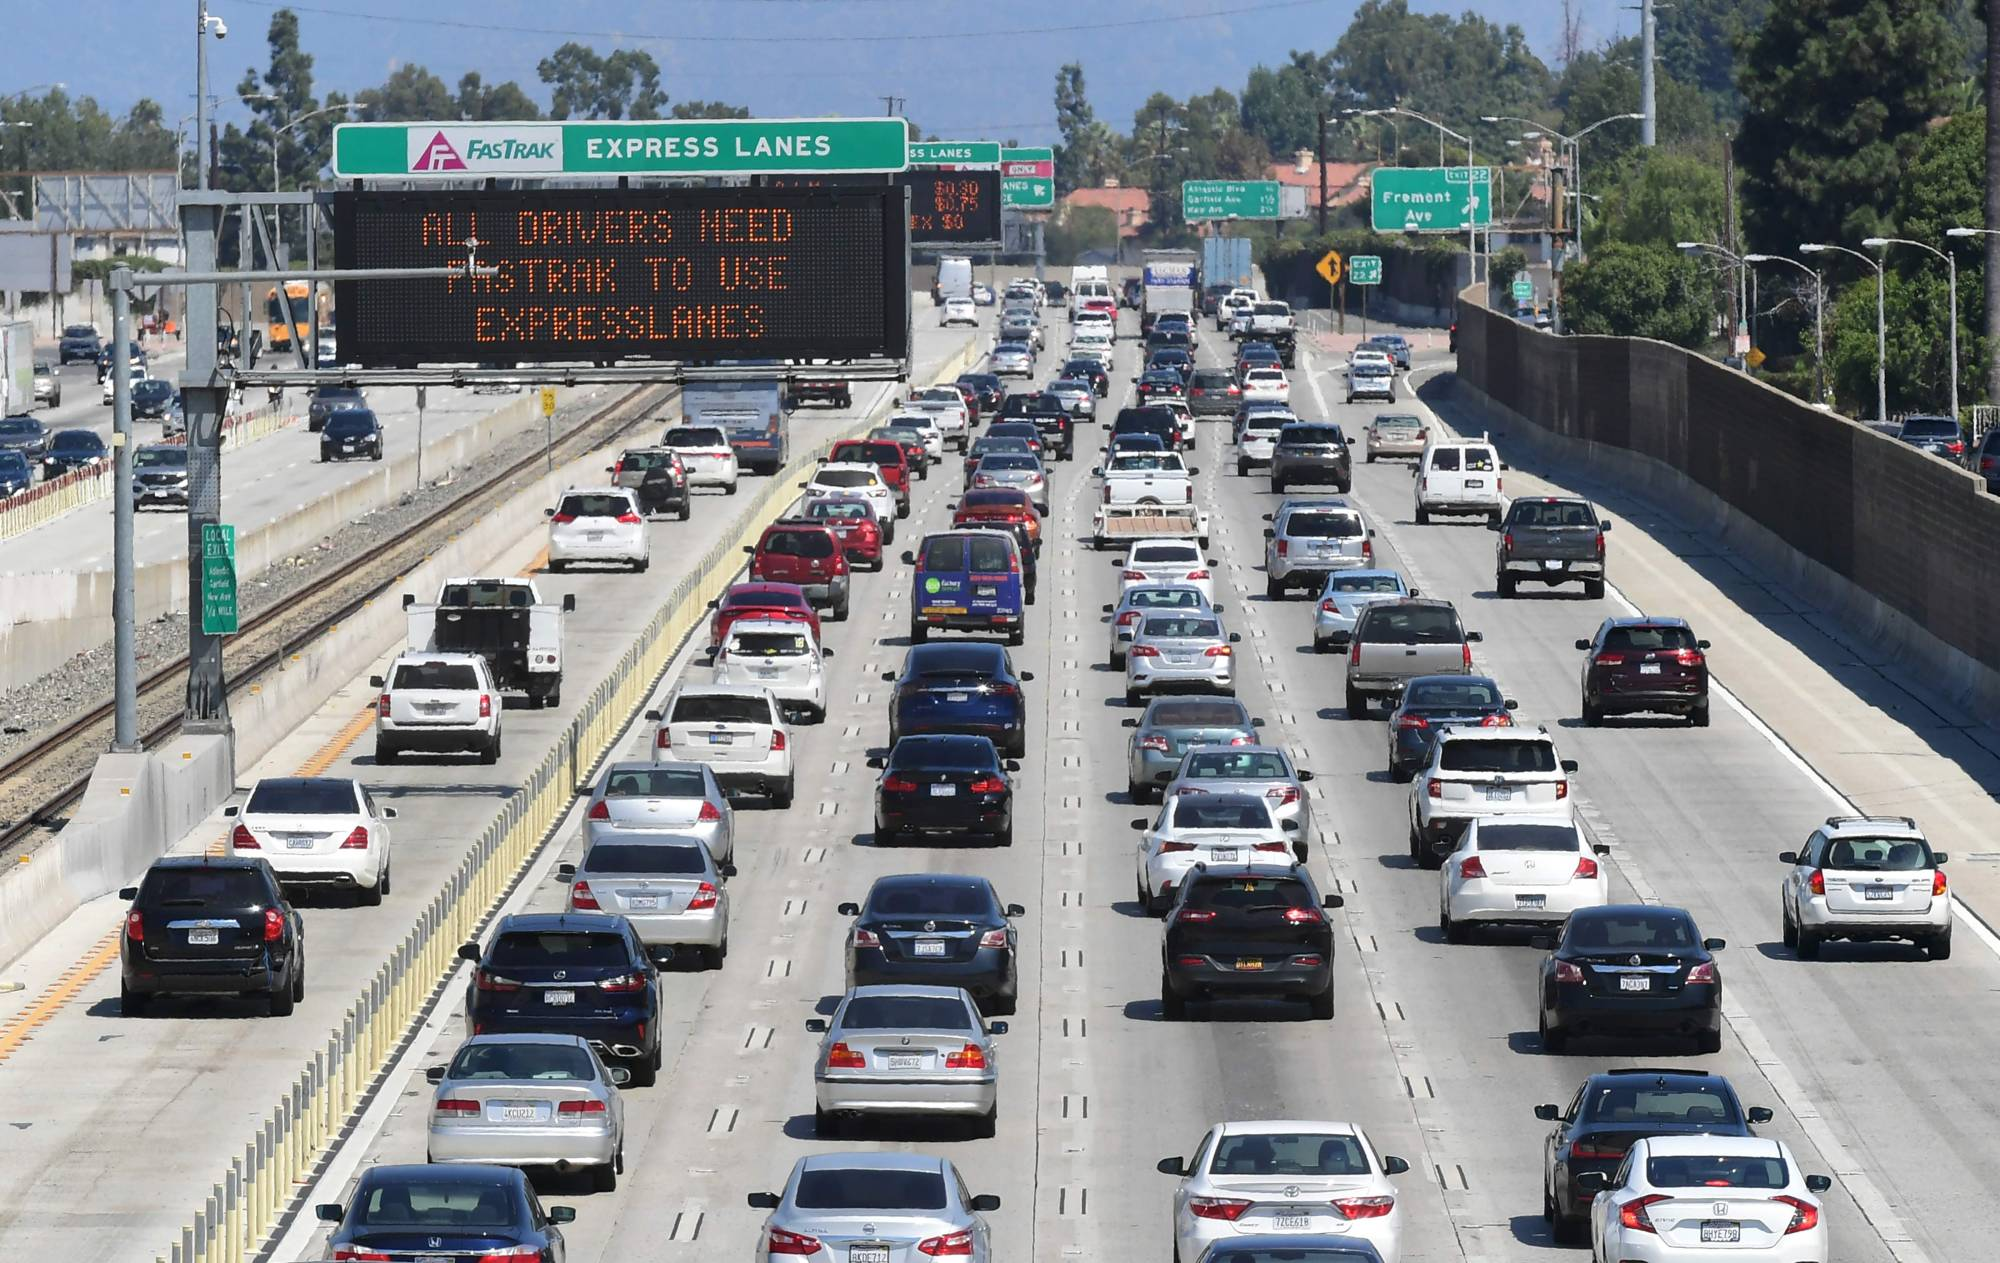 Traffic flows on the Interstate 10 freeway in Los Angeles. California Gov. Gavin Newsom on Wednesday ordered all passenger vehicles sold in the state to be zero emissions by 2035 to fight climate change and smog. | AFP-JIJI